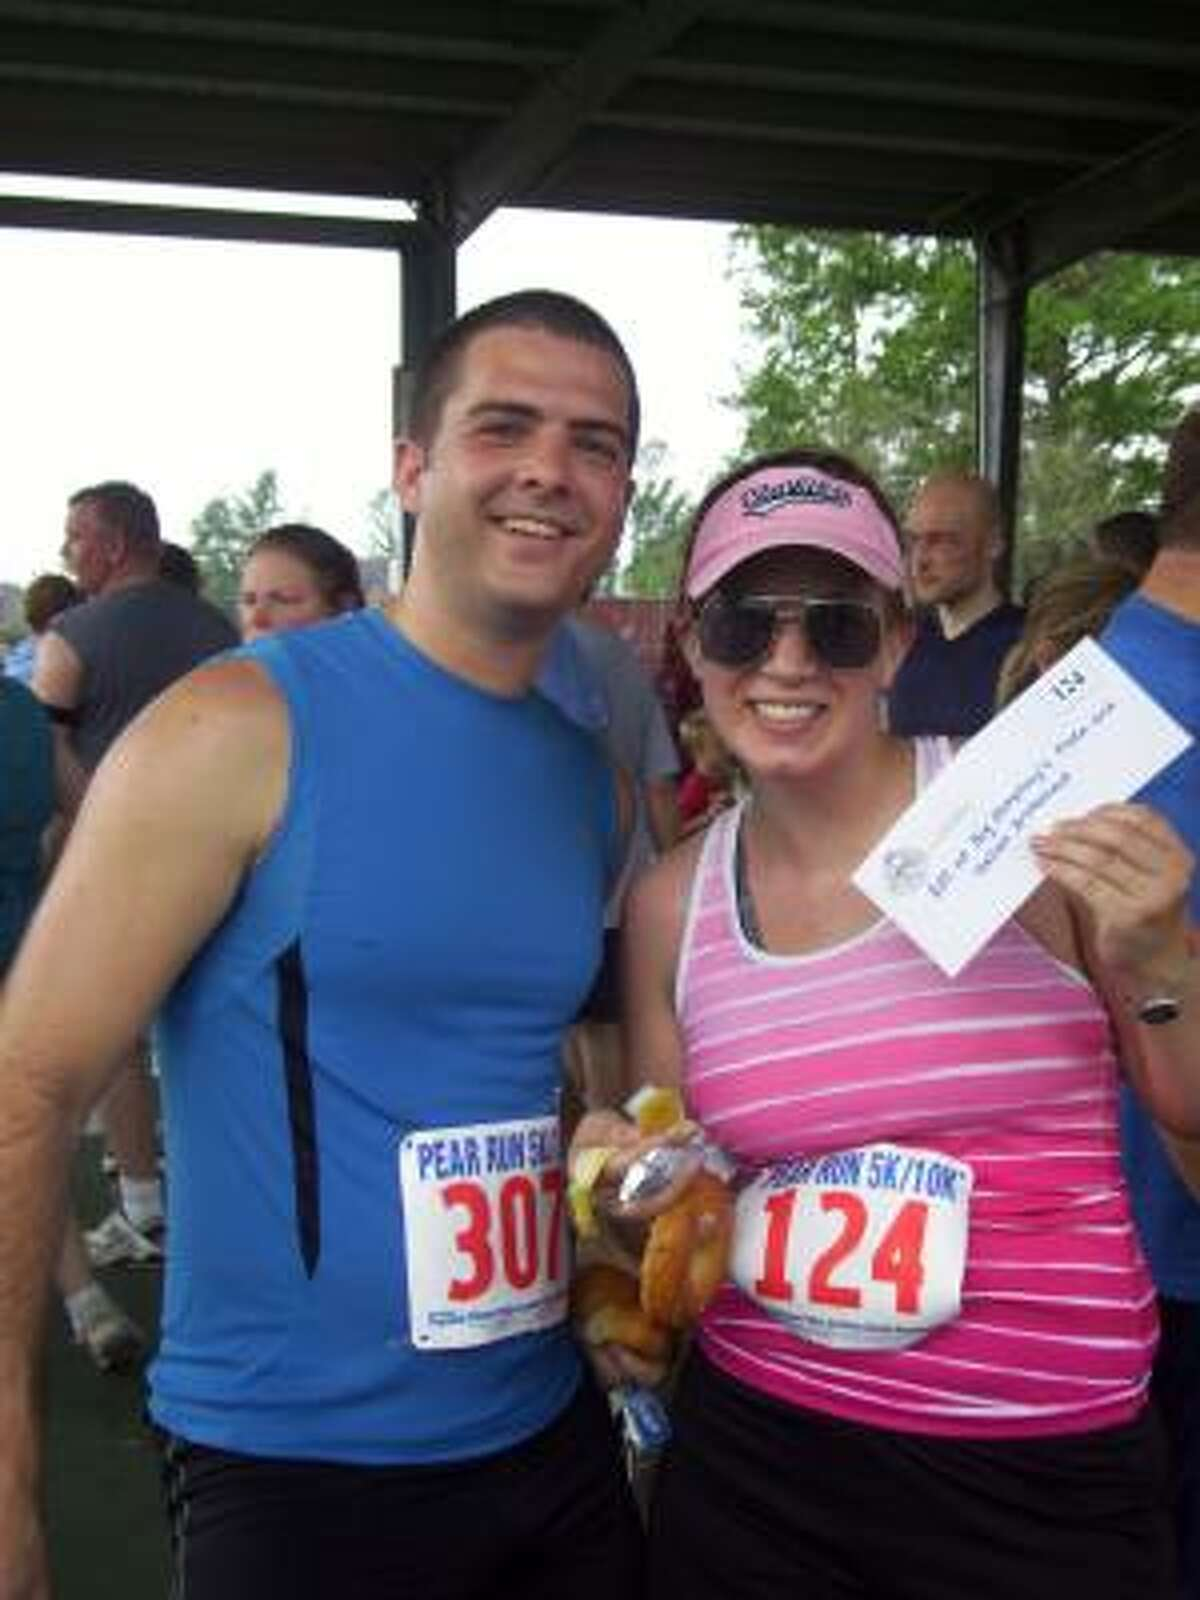 Addison Tackaberry, left, is seen with his friend Julie Brasefield, who won a $25 gift certificate to Humphrey's after the run.